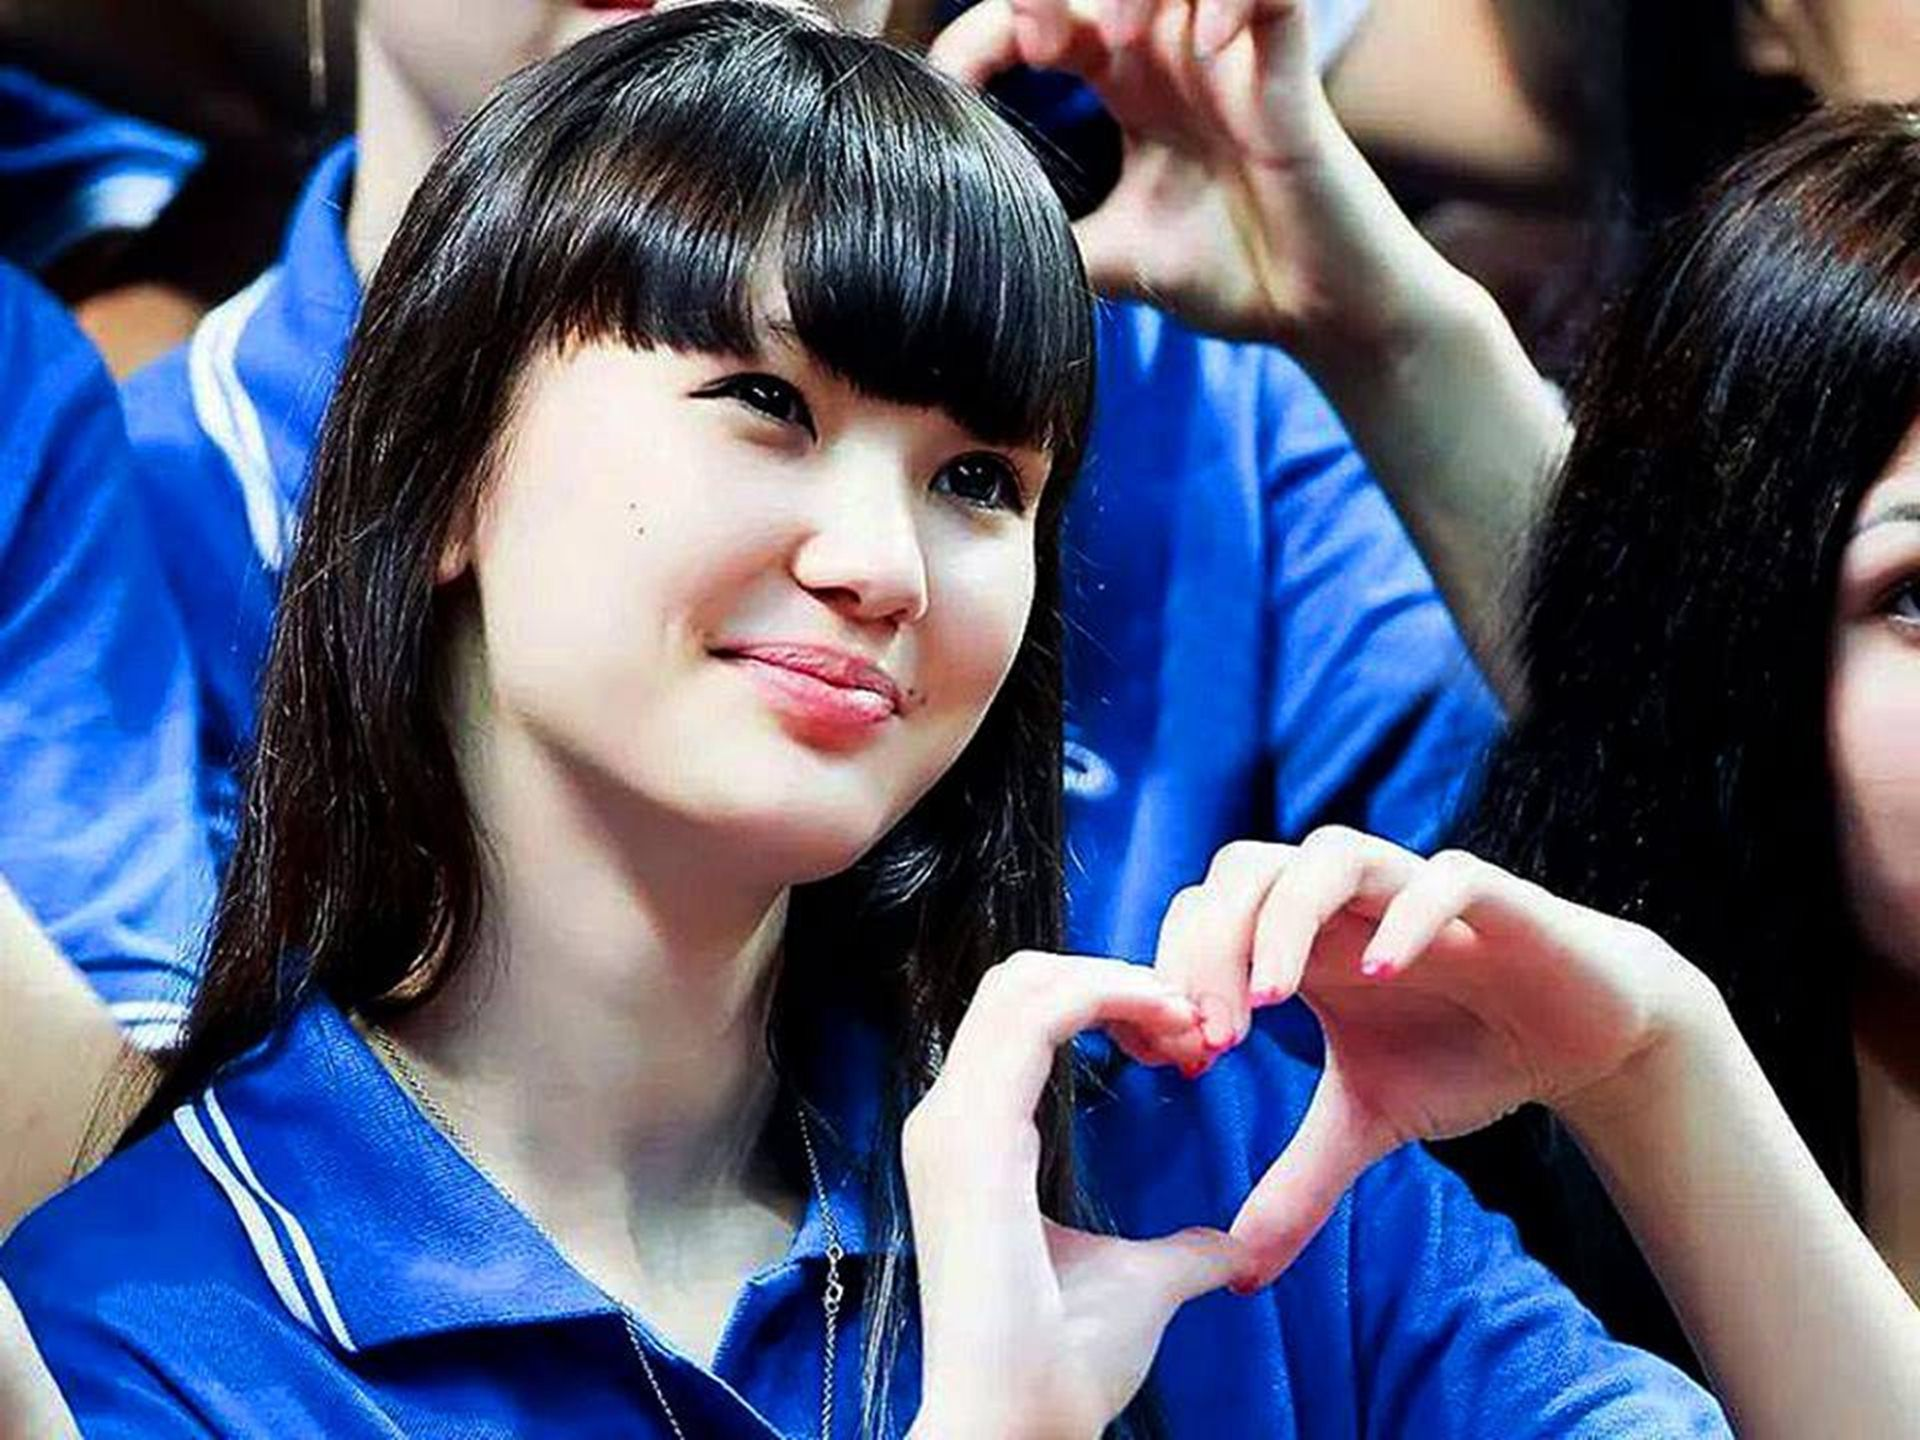 The beautiful Sabina Altynbekova volleyball player from